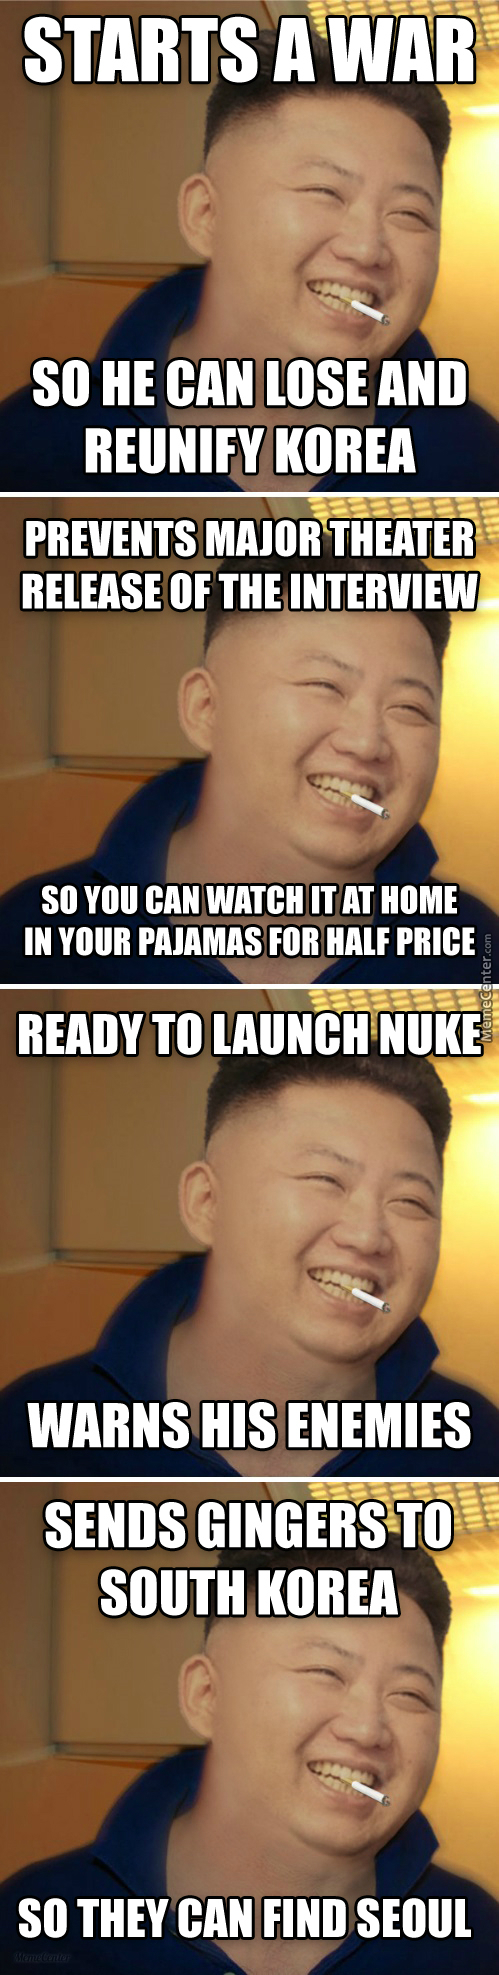 Good Guy Kim Jong Un